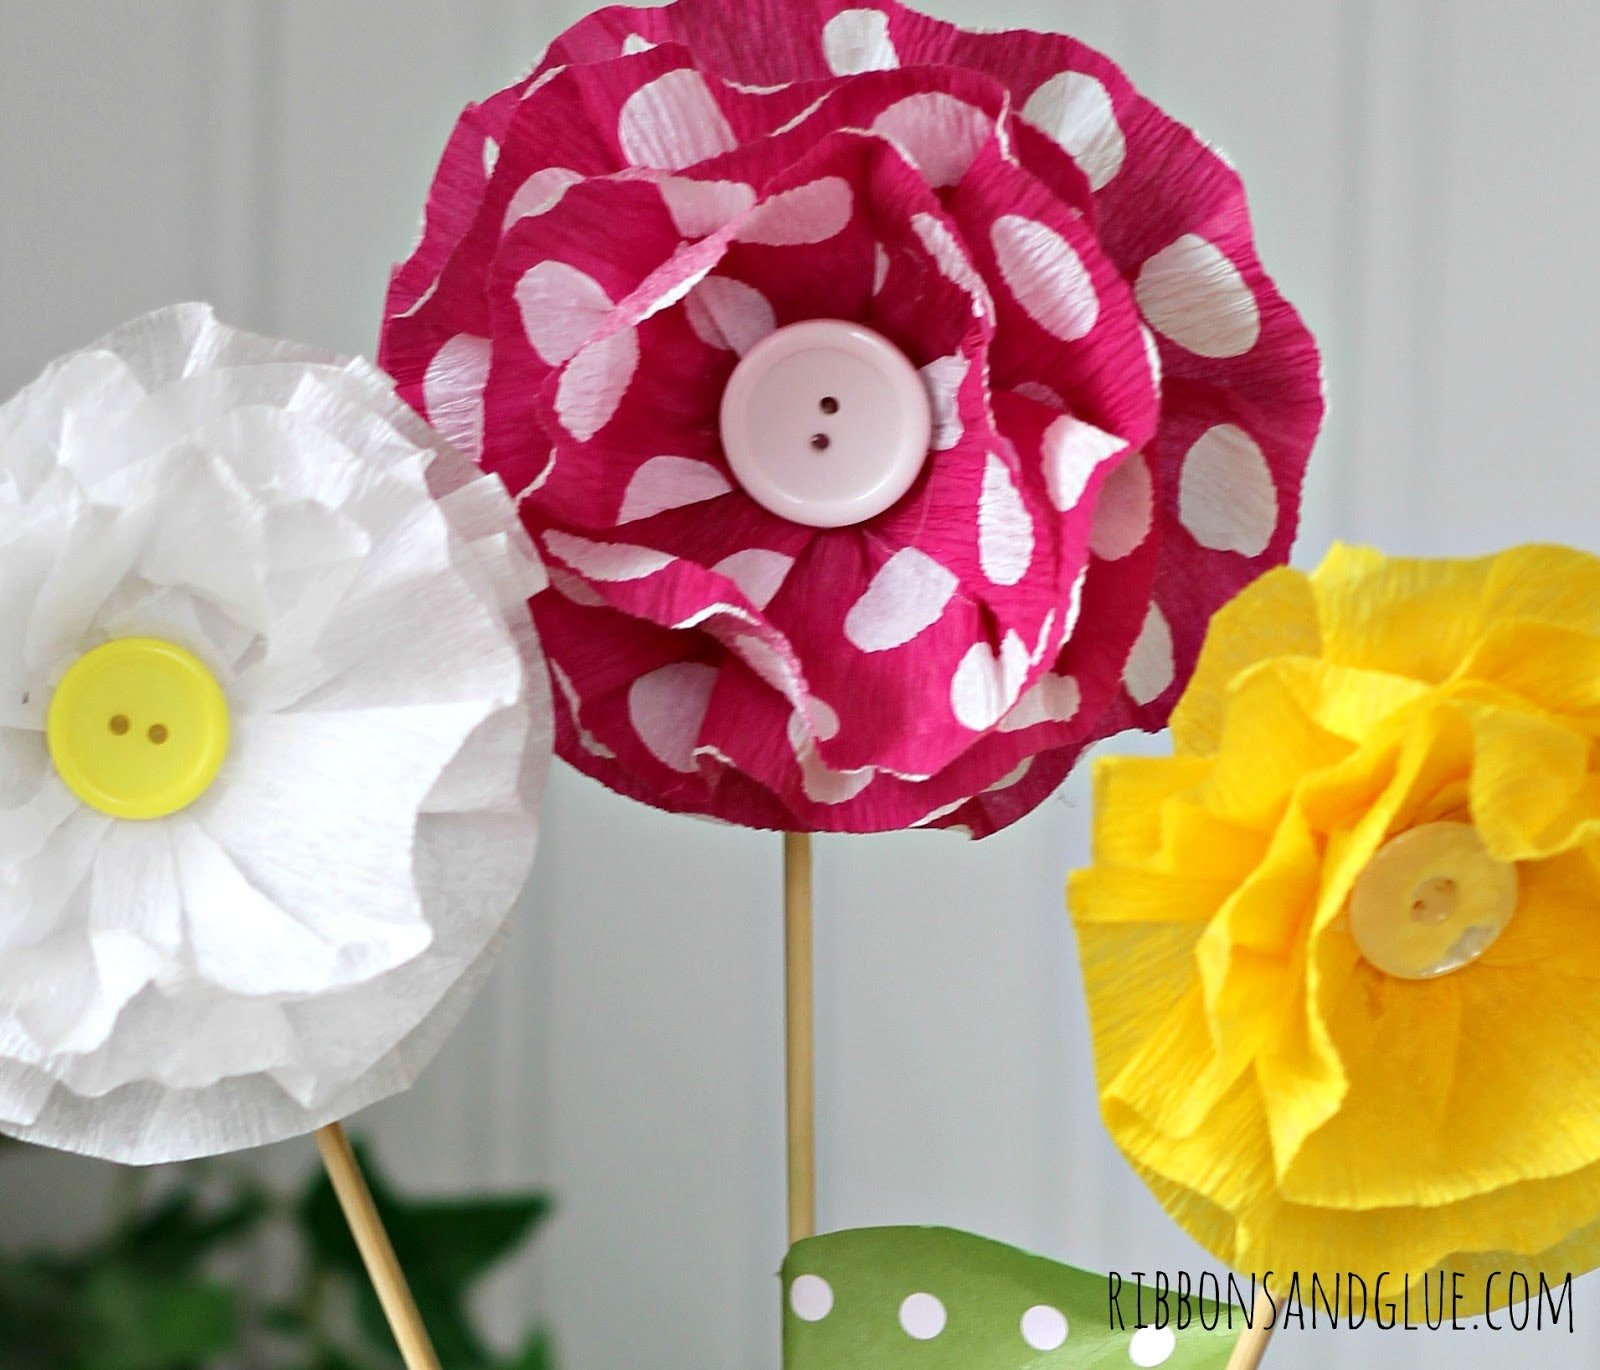 How To Make Crepe Paper Flowers | TodaysCreativeBlog.net